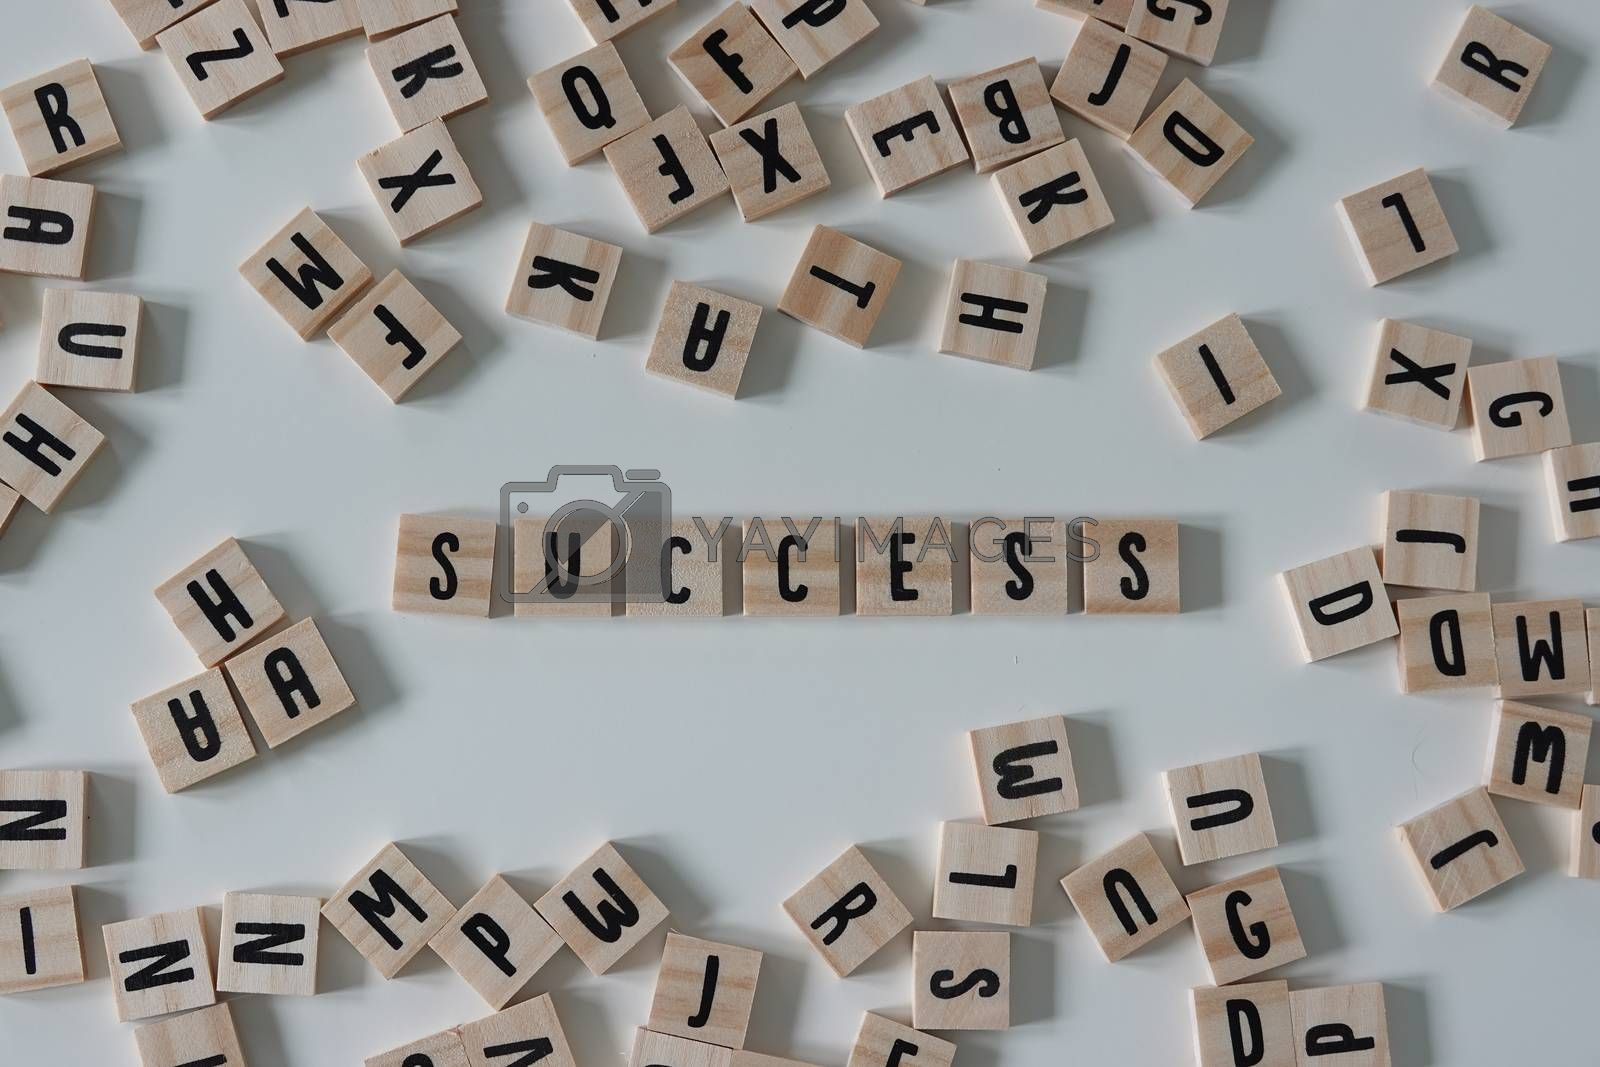 Success written in wooden letter tiles surrounded by random letters on a white background